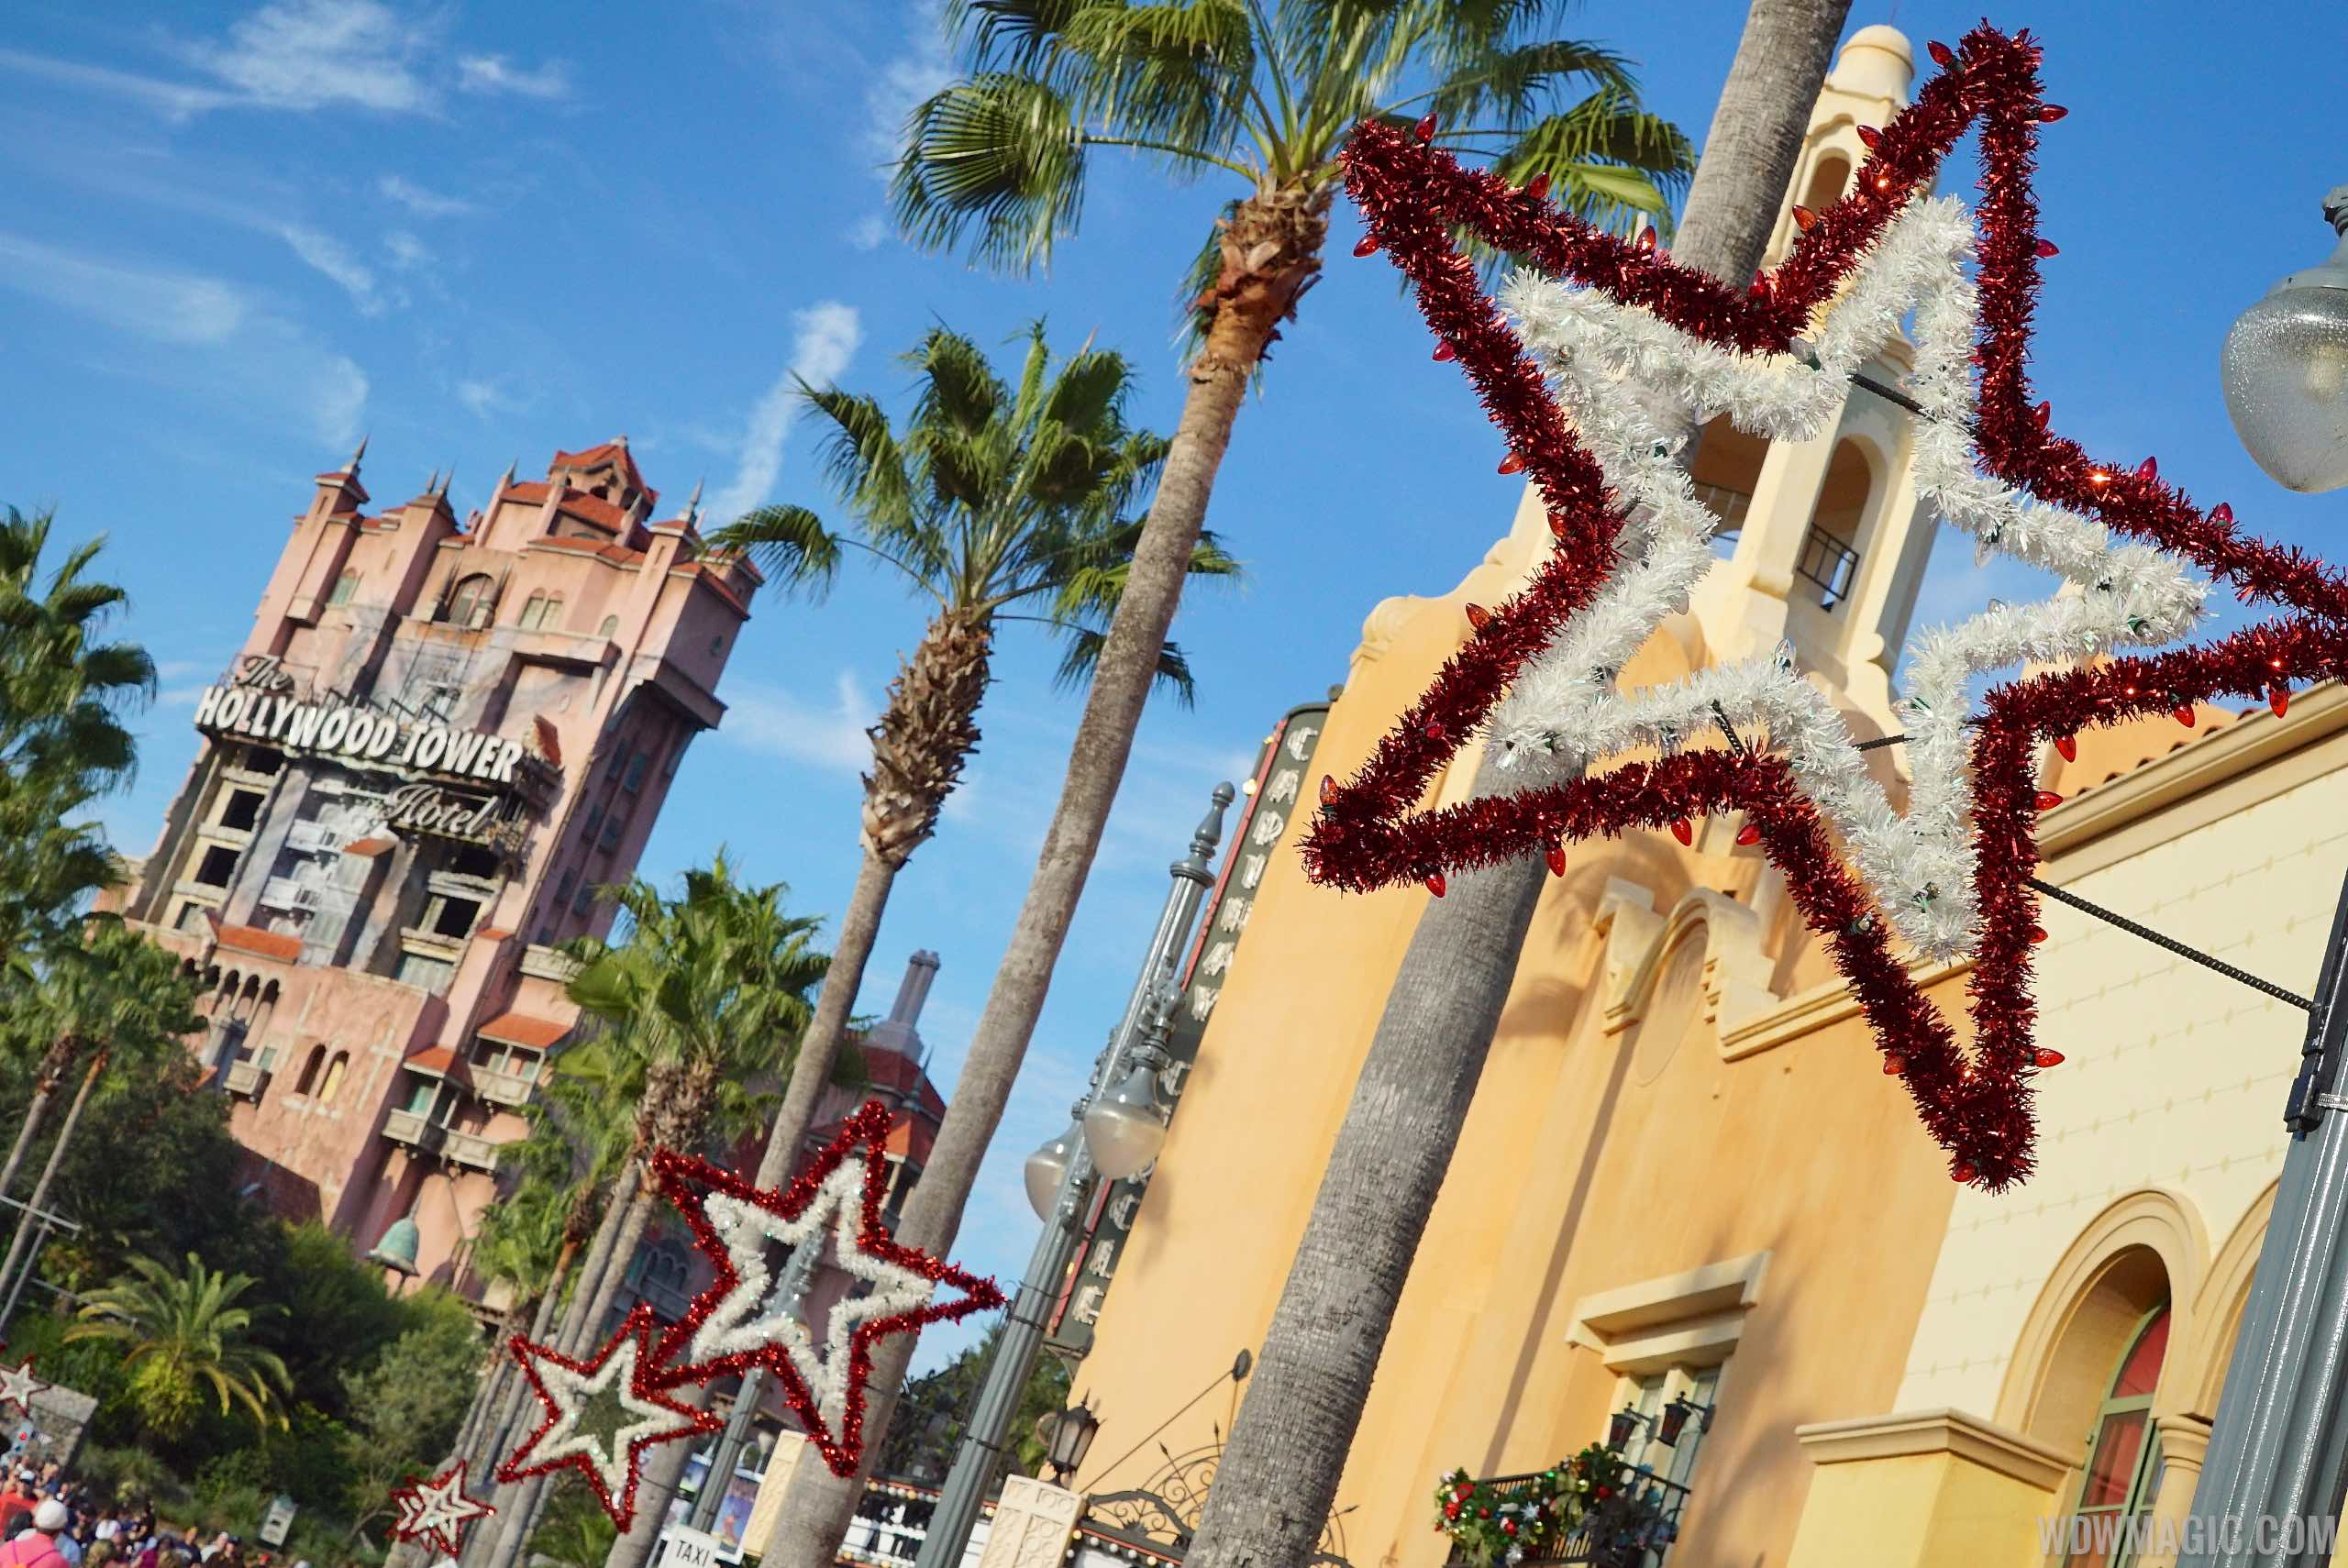 Holidays at Disney's Hollywood Studios overview